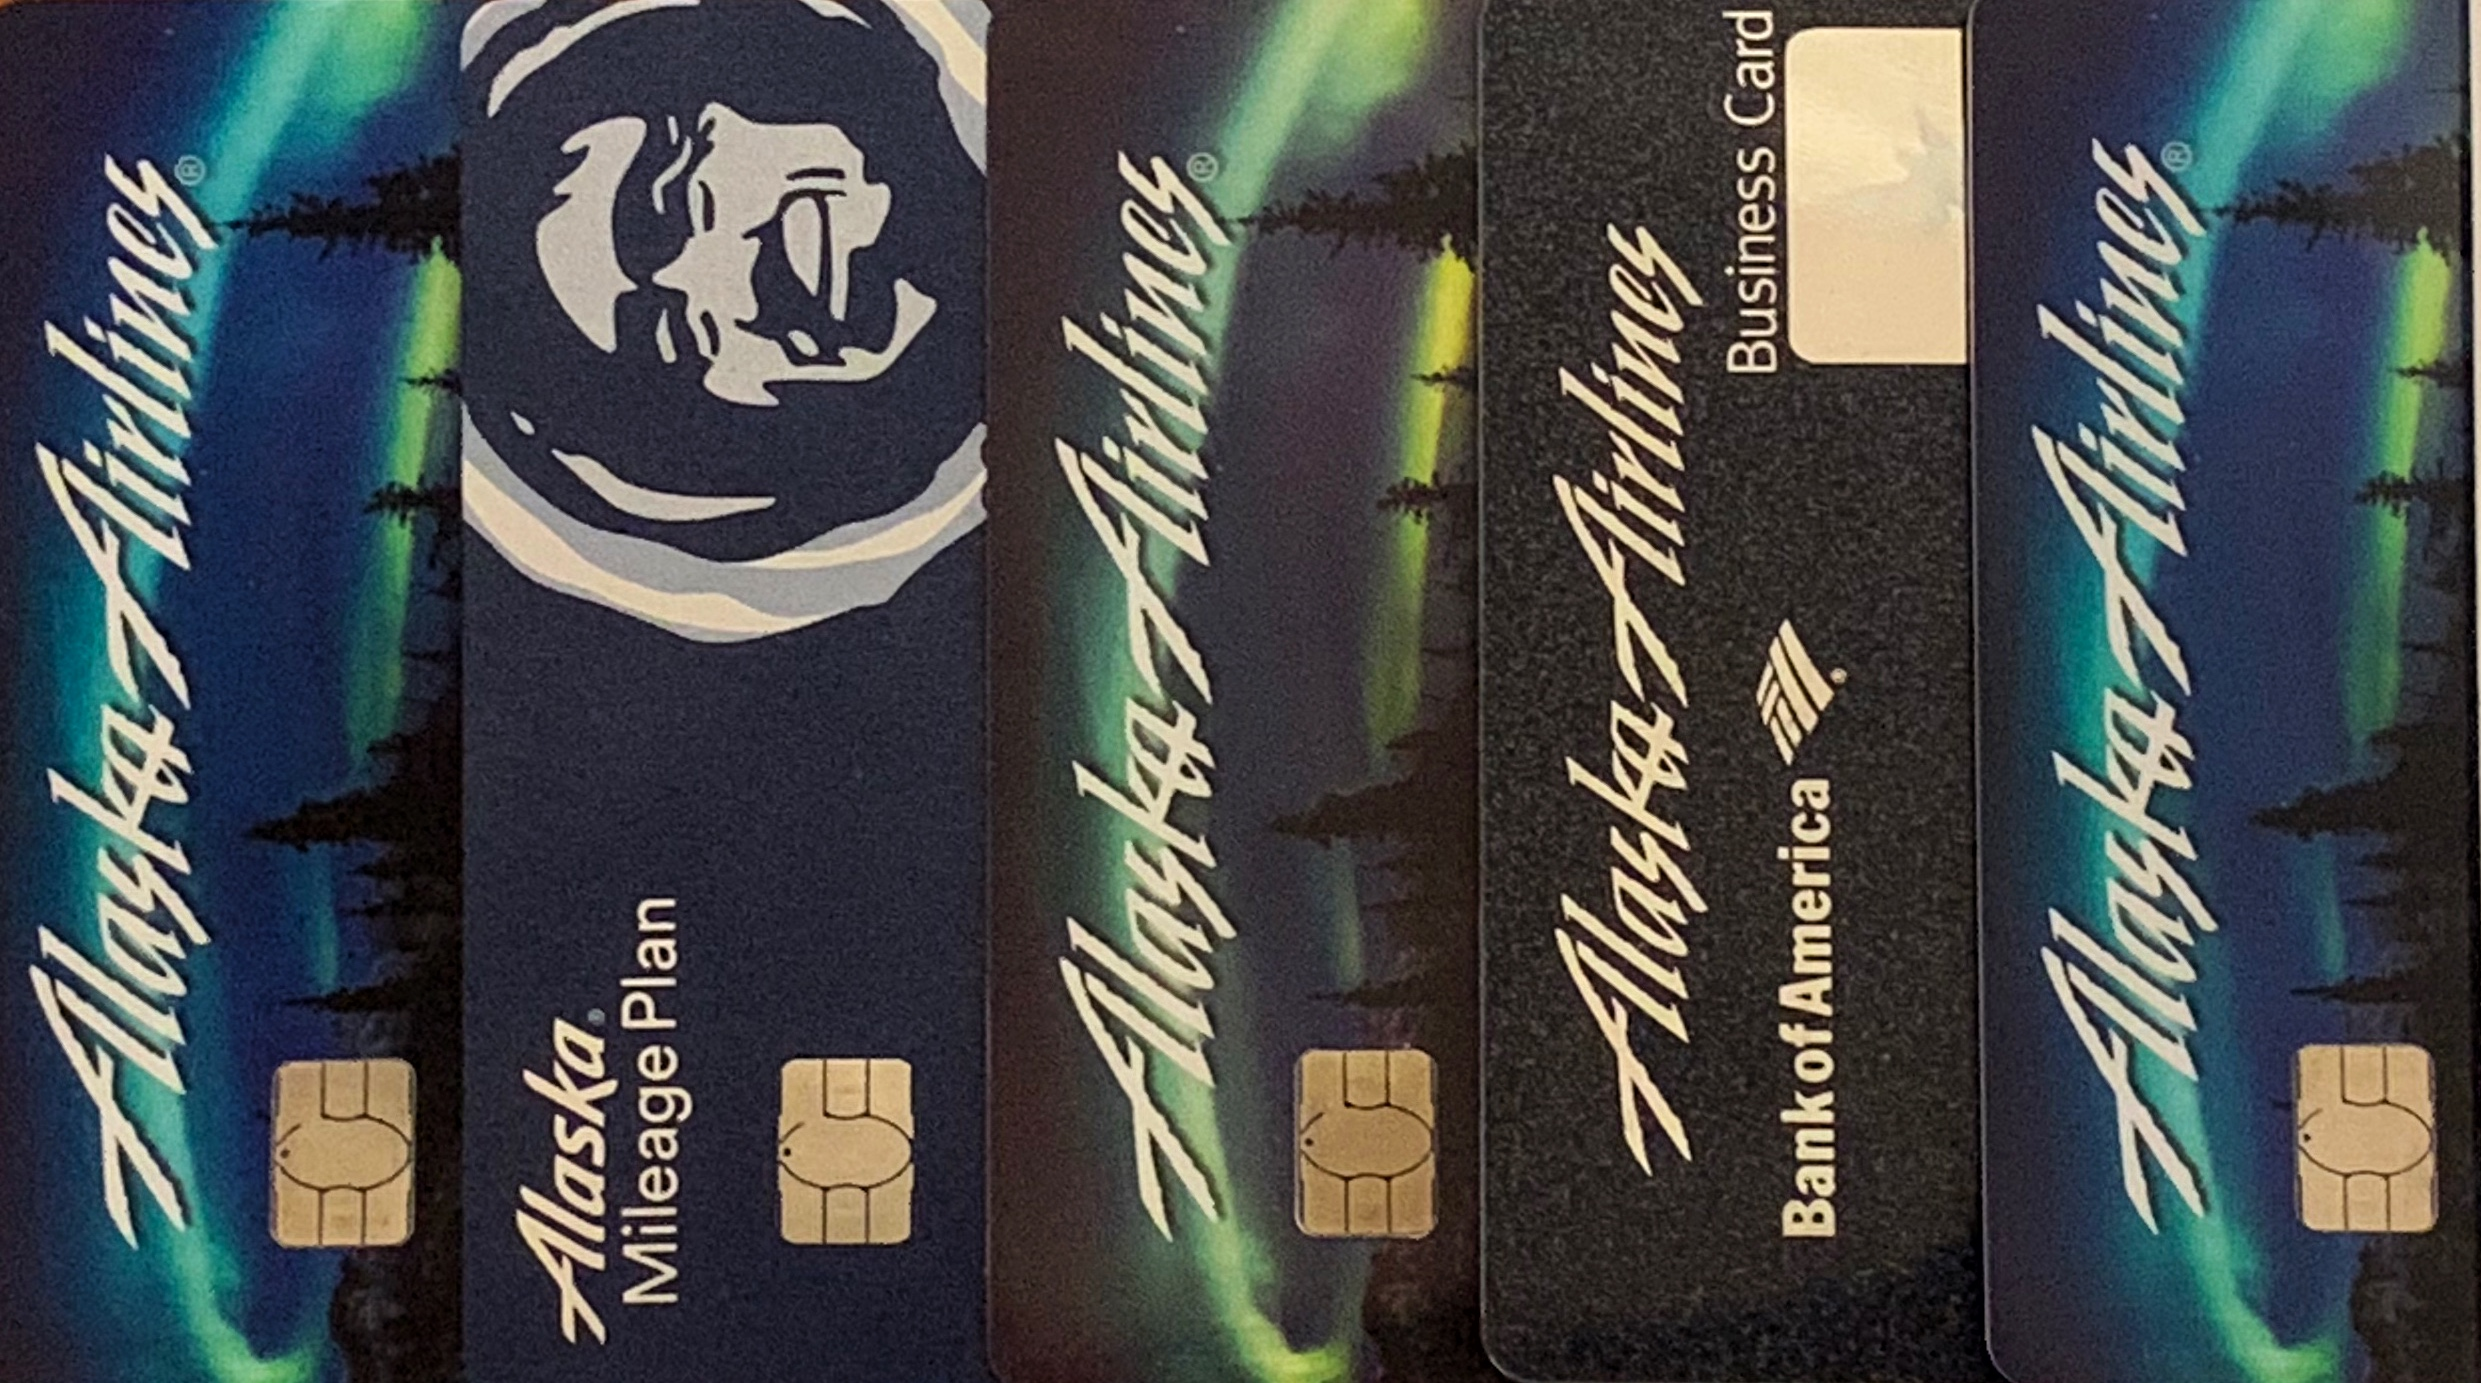 Alaska Airlines Boarding Groups - A Complete Guide [2020 Update]